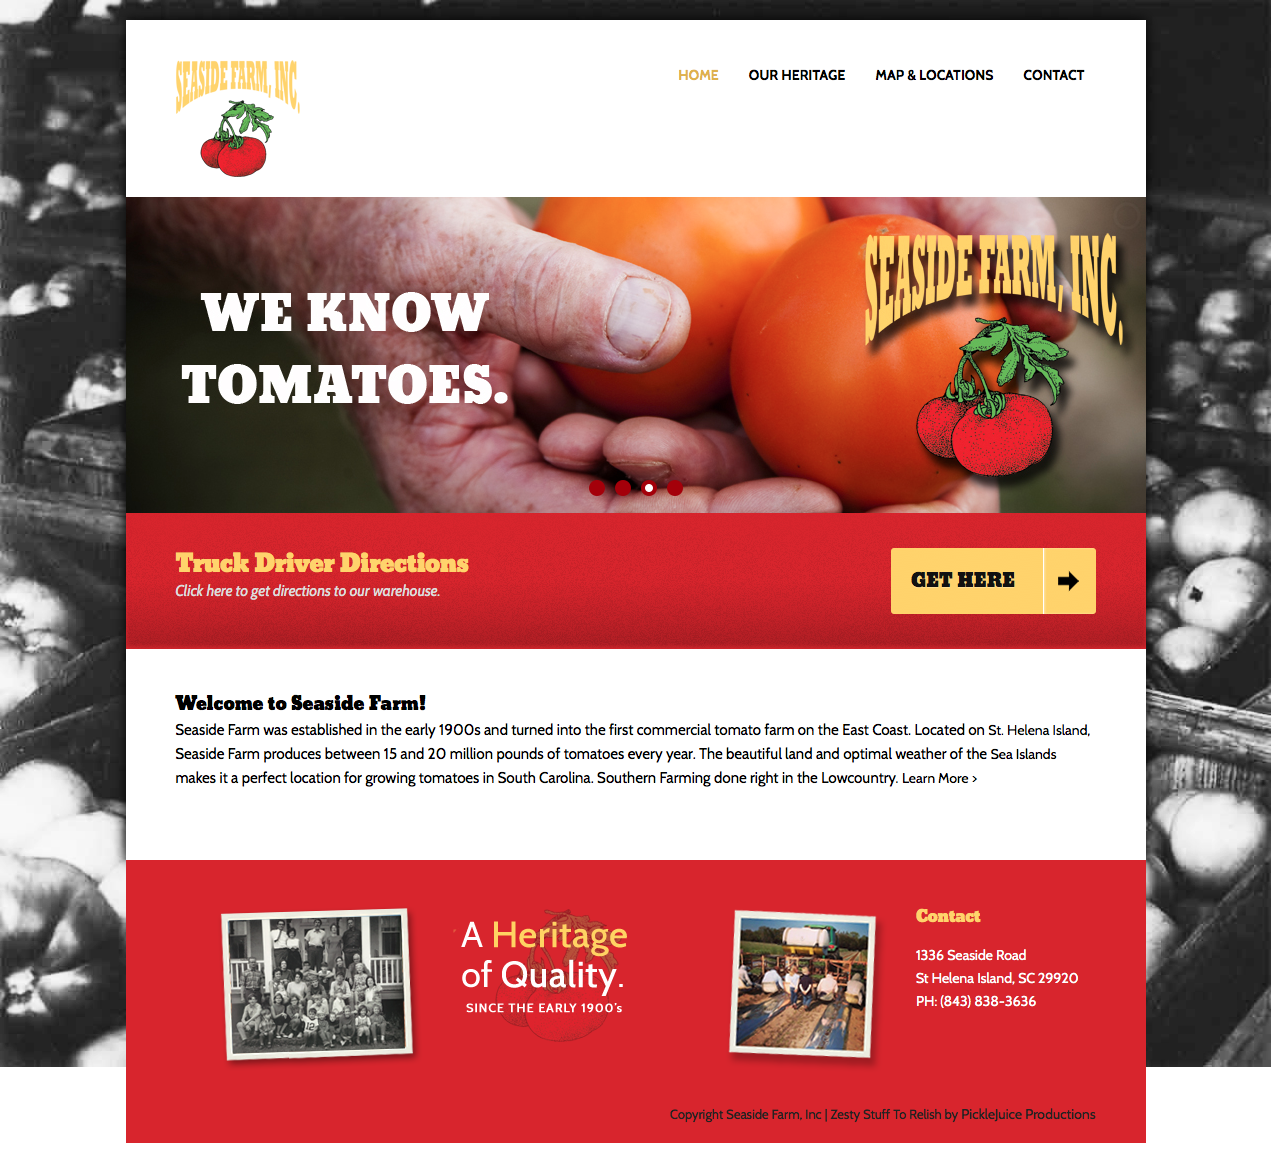 Beaufort Web Design | Seaside Farm | PickleJuice Productions